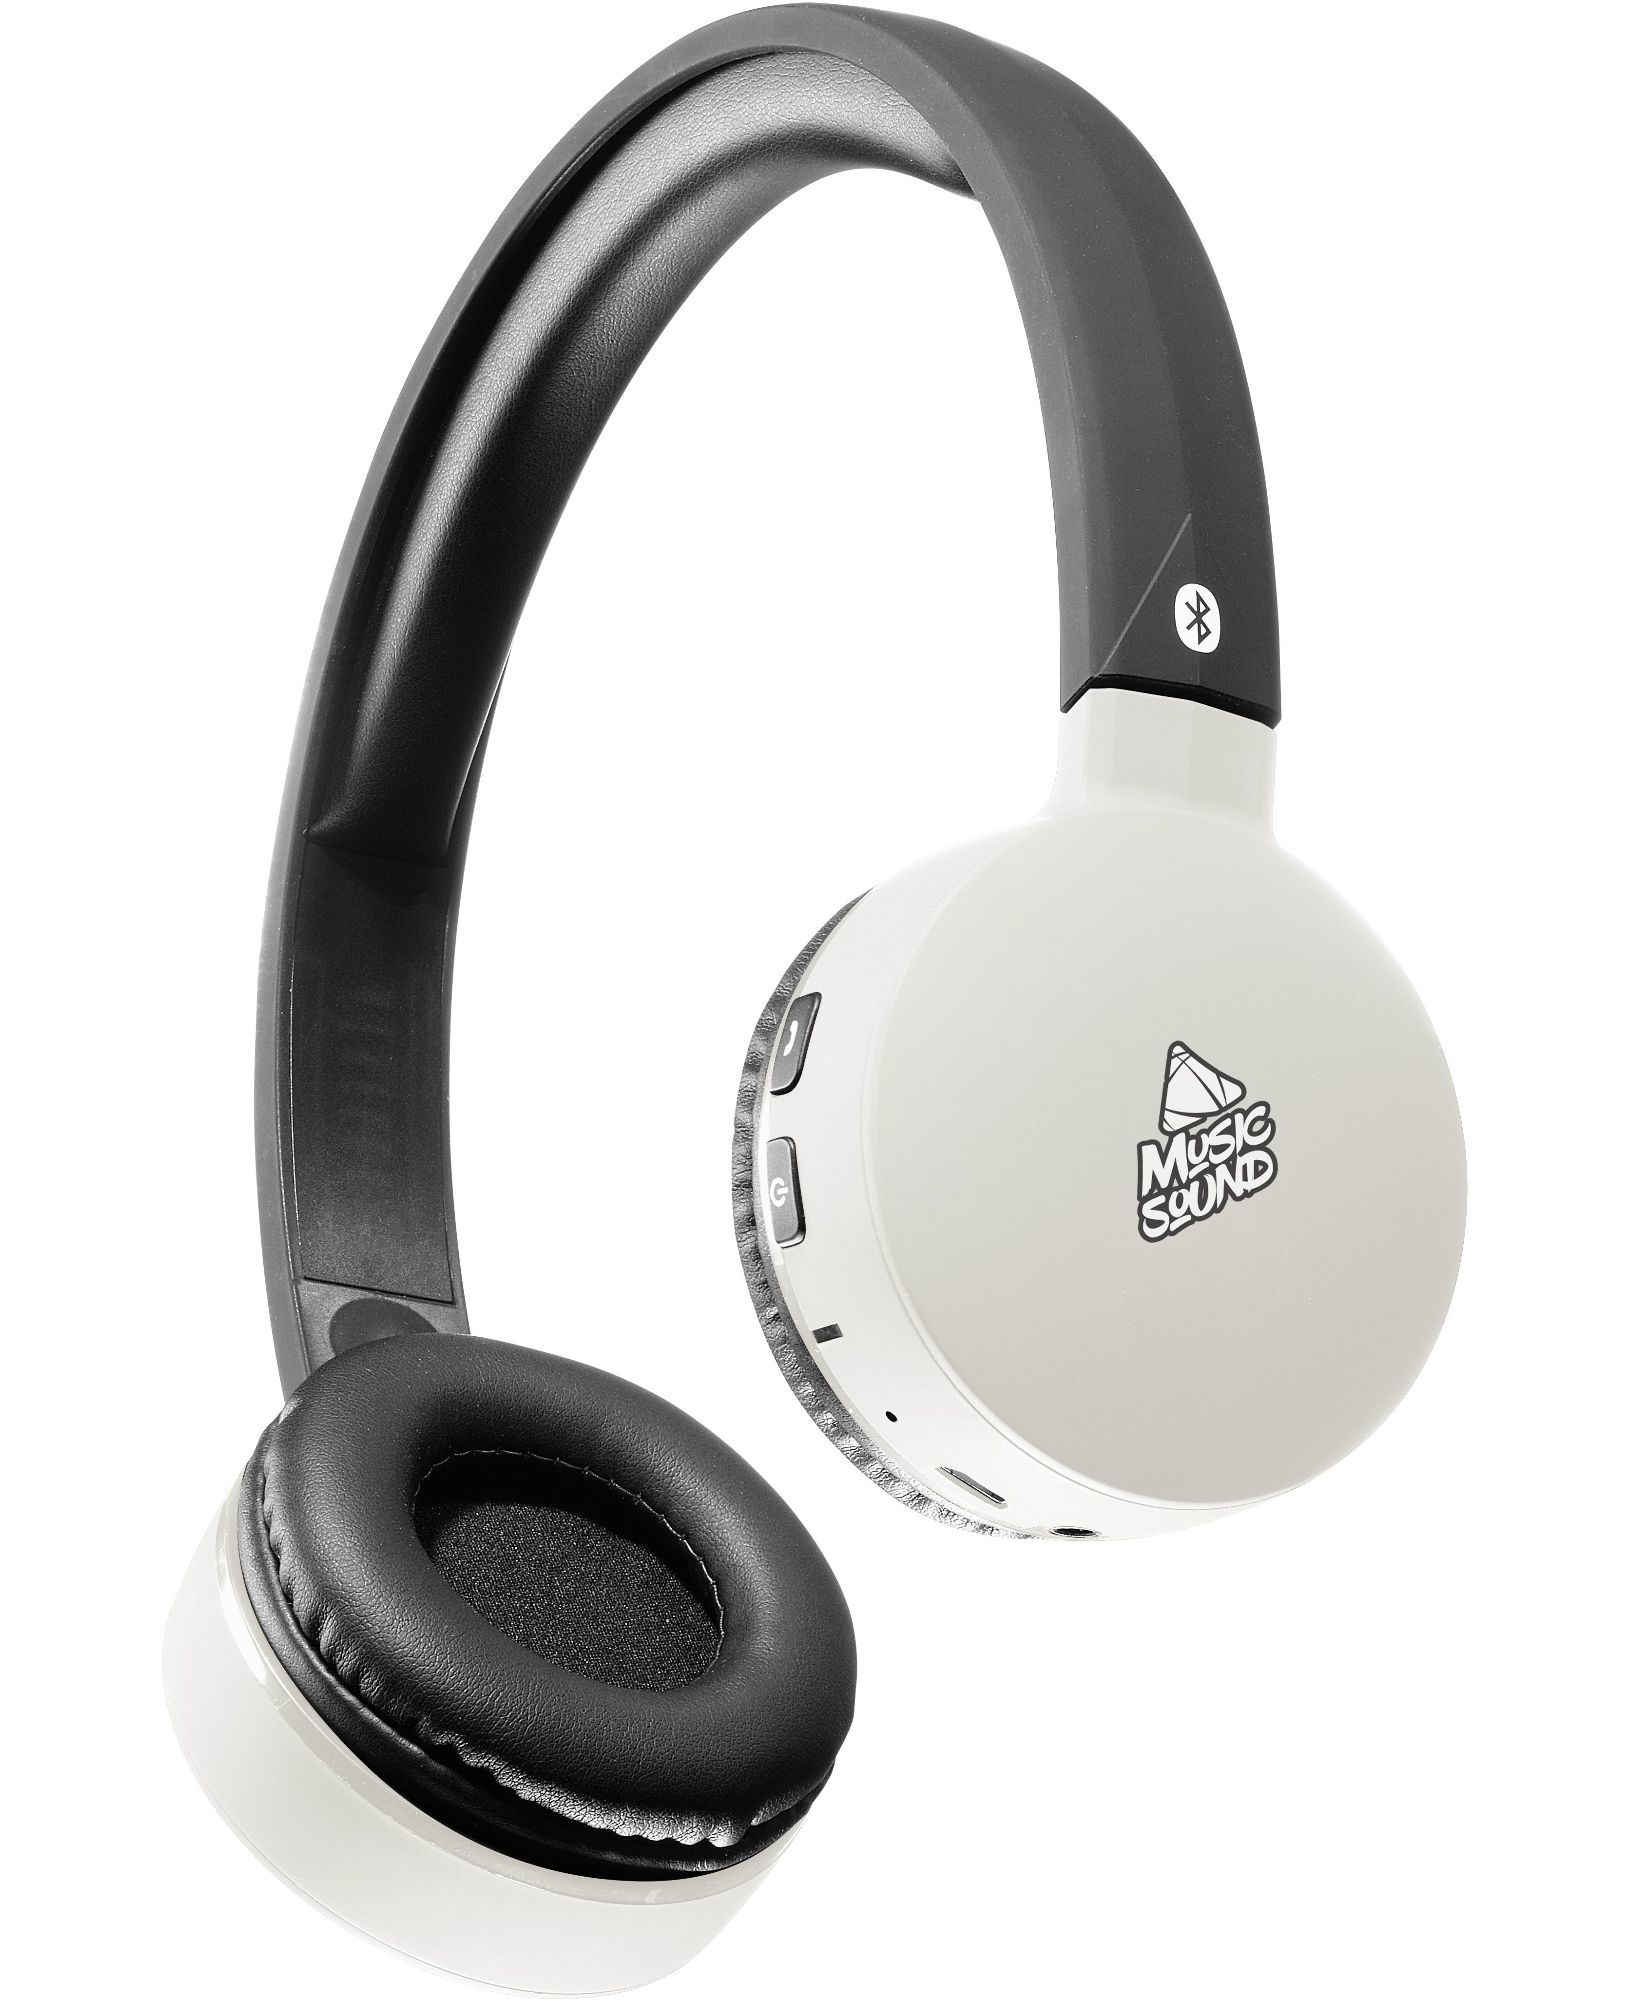 Cellularline MUSIC SOUND CUFFIE BLUETOOTH - UNIVERSALE Cuffie Bluetooth colorate con archetto estendibile e microfono